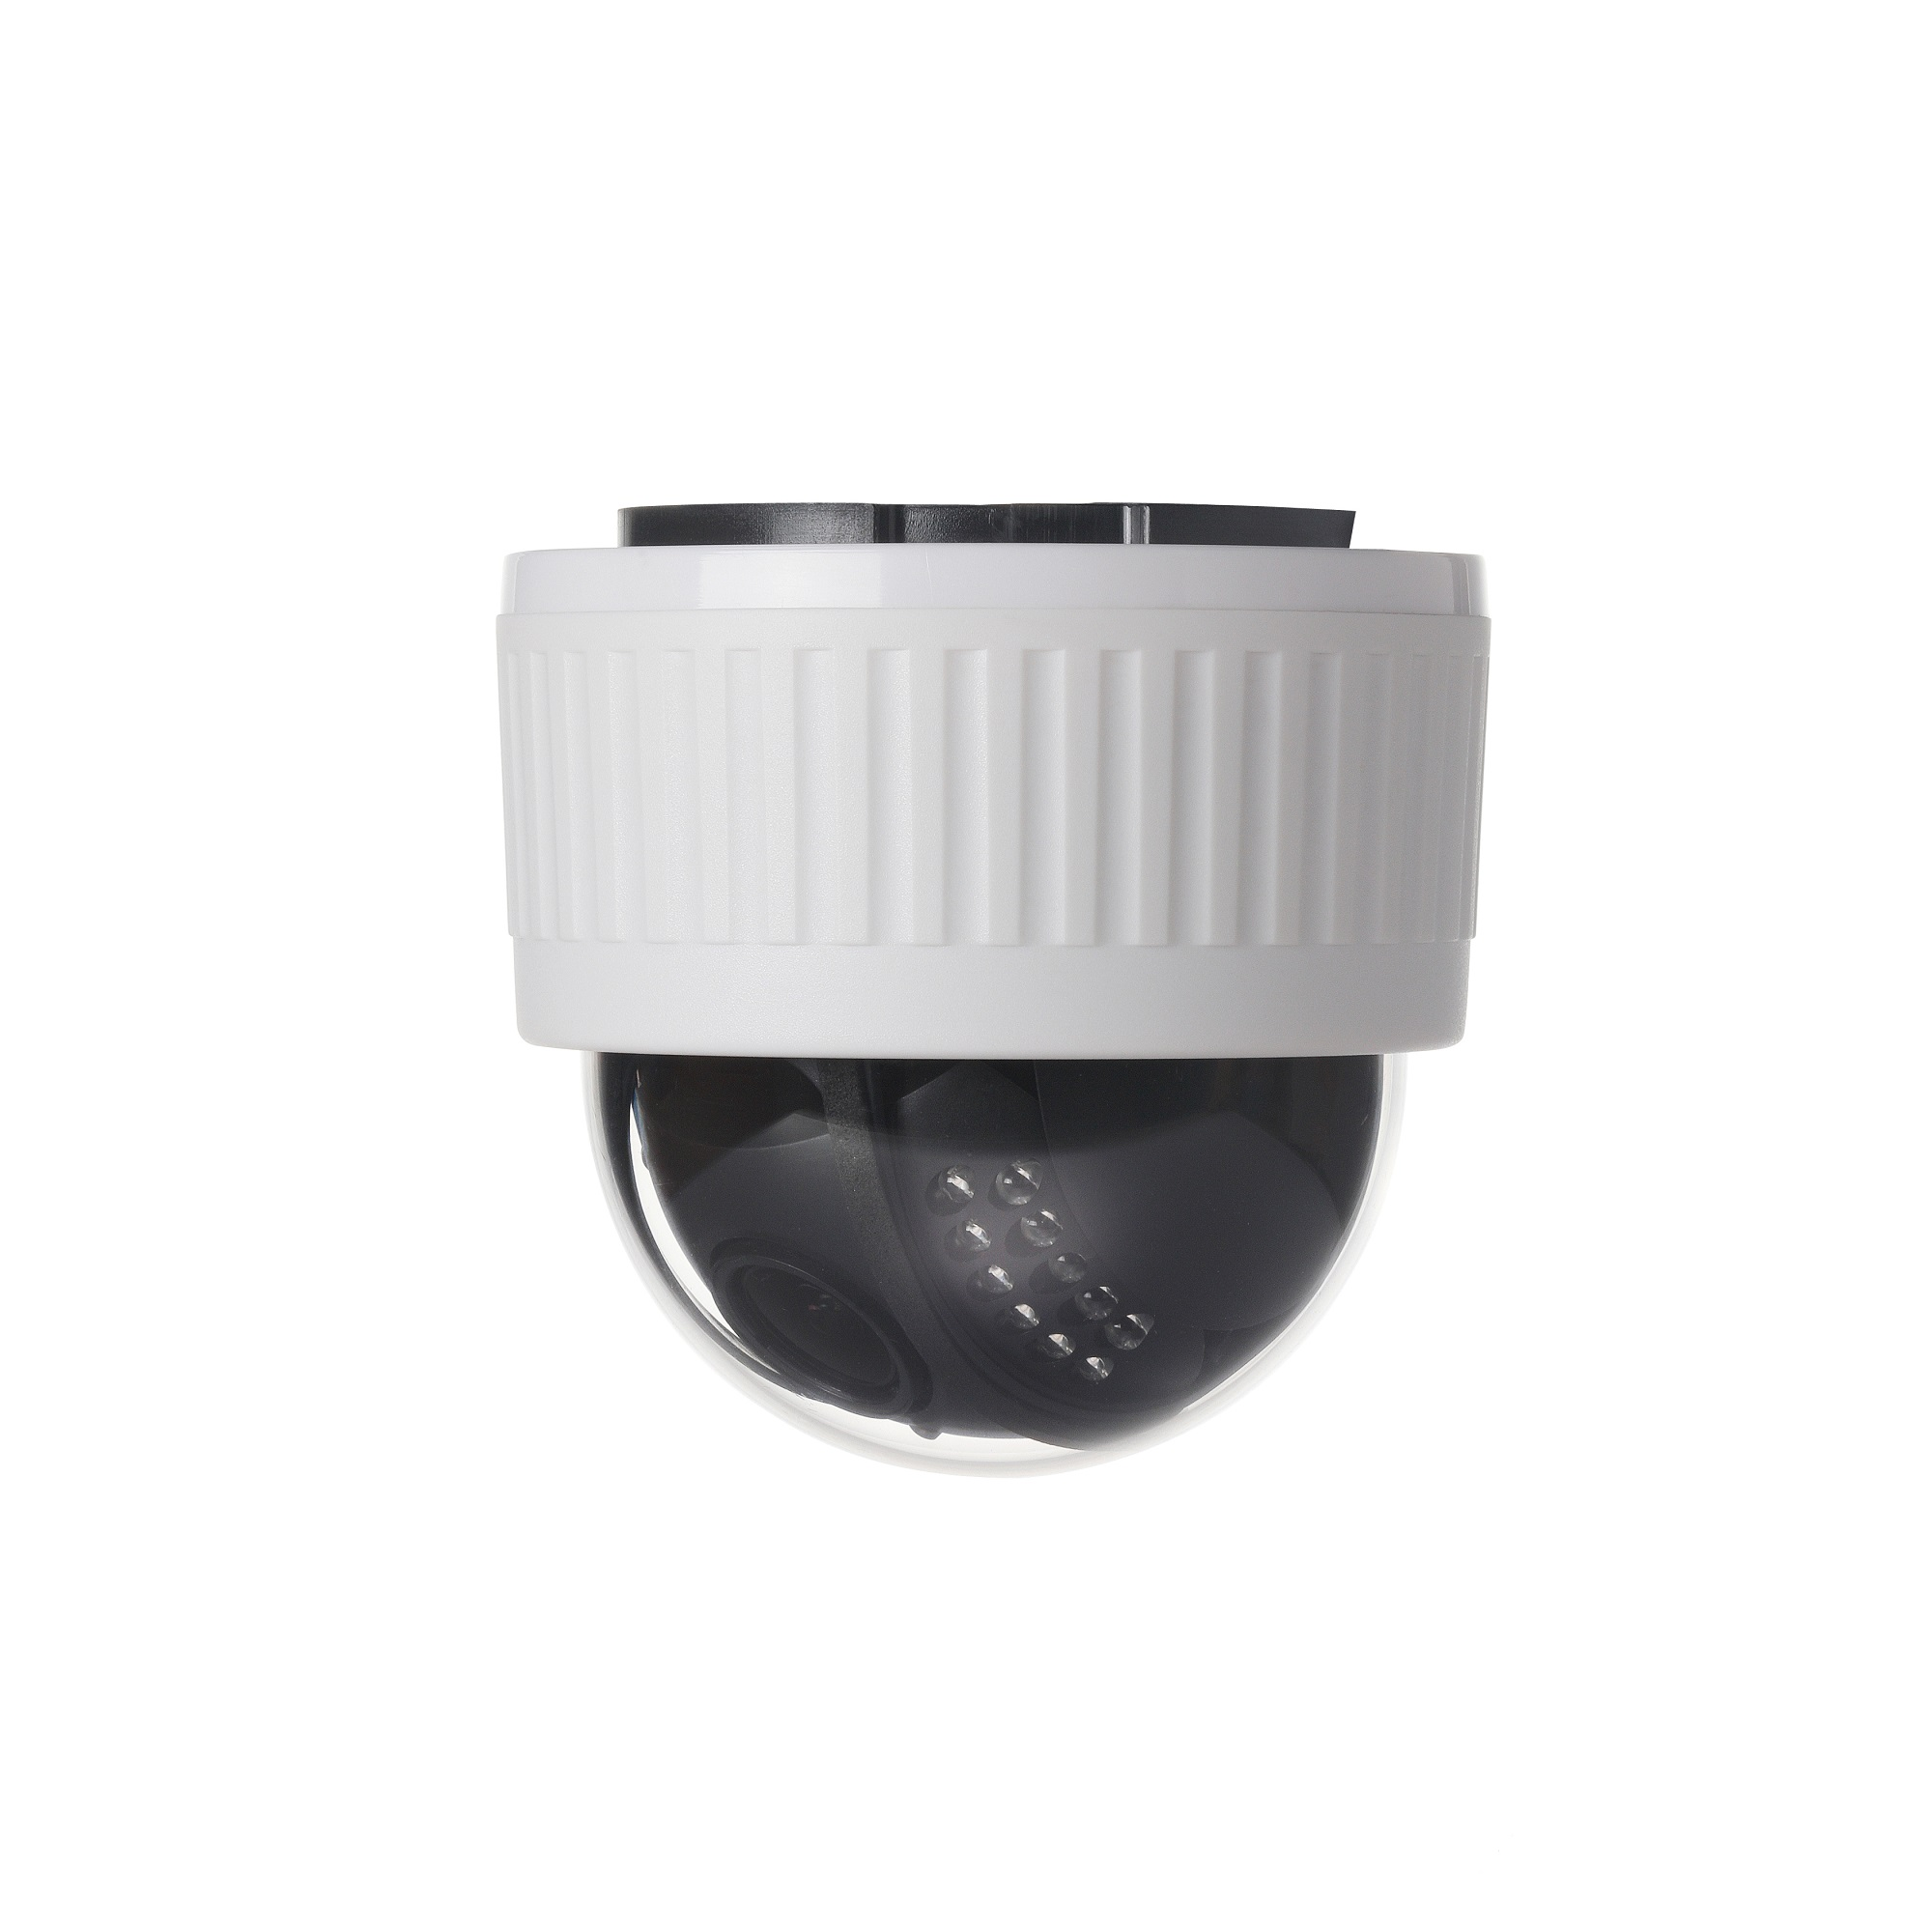 Wholesale IP66 Waterproof PTZ Security Camera (1/3 Inch CMOS, 960p, Night